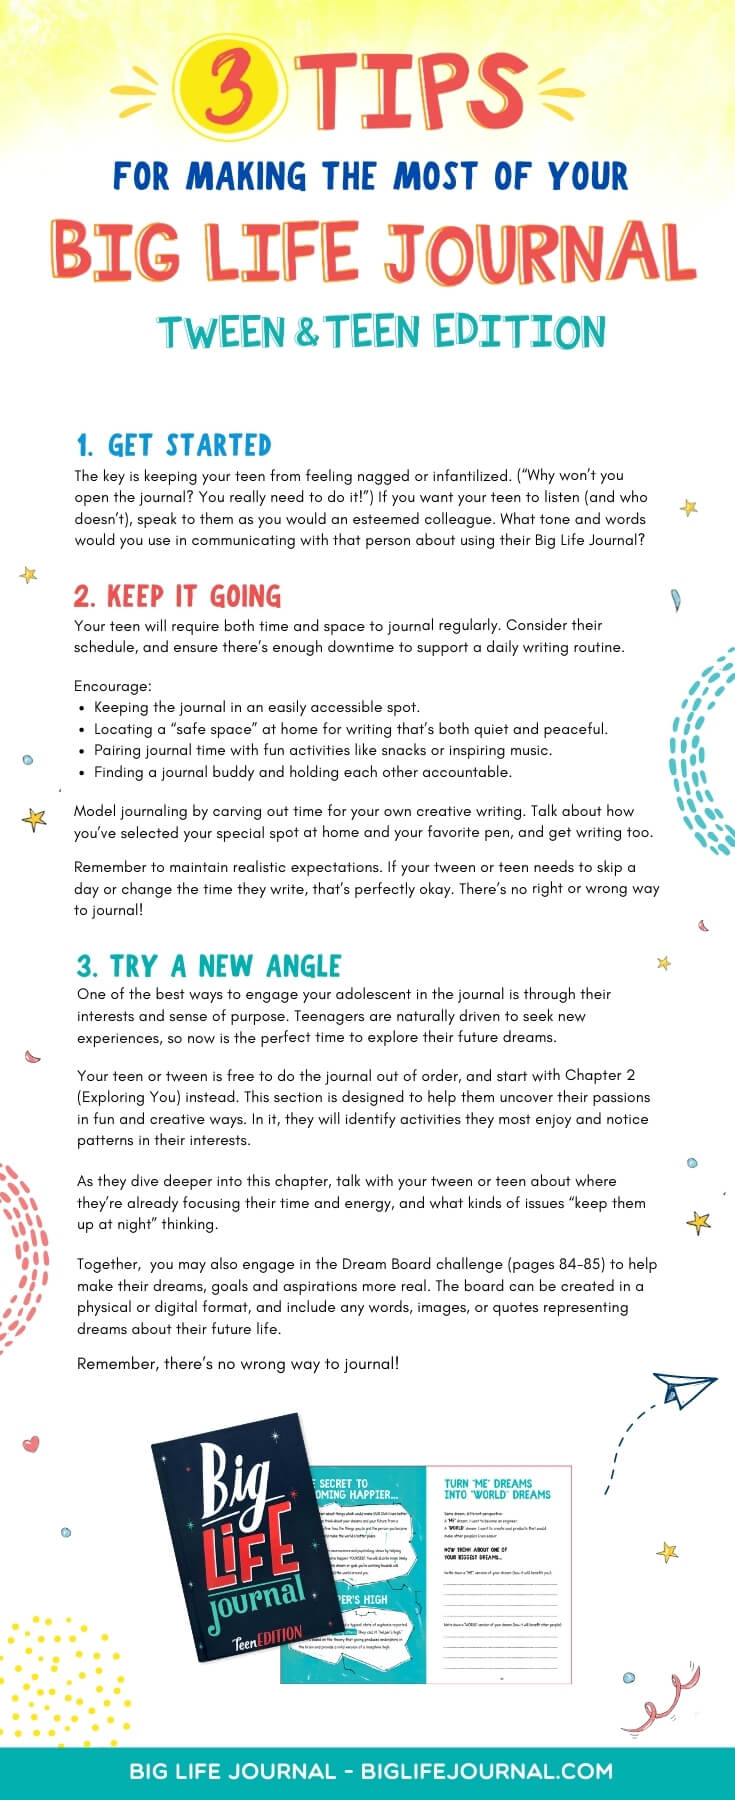 3 Tips for Making Most of Big Life Journal Tween and Teen Edition